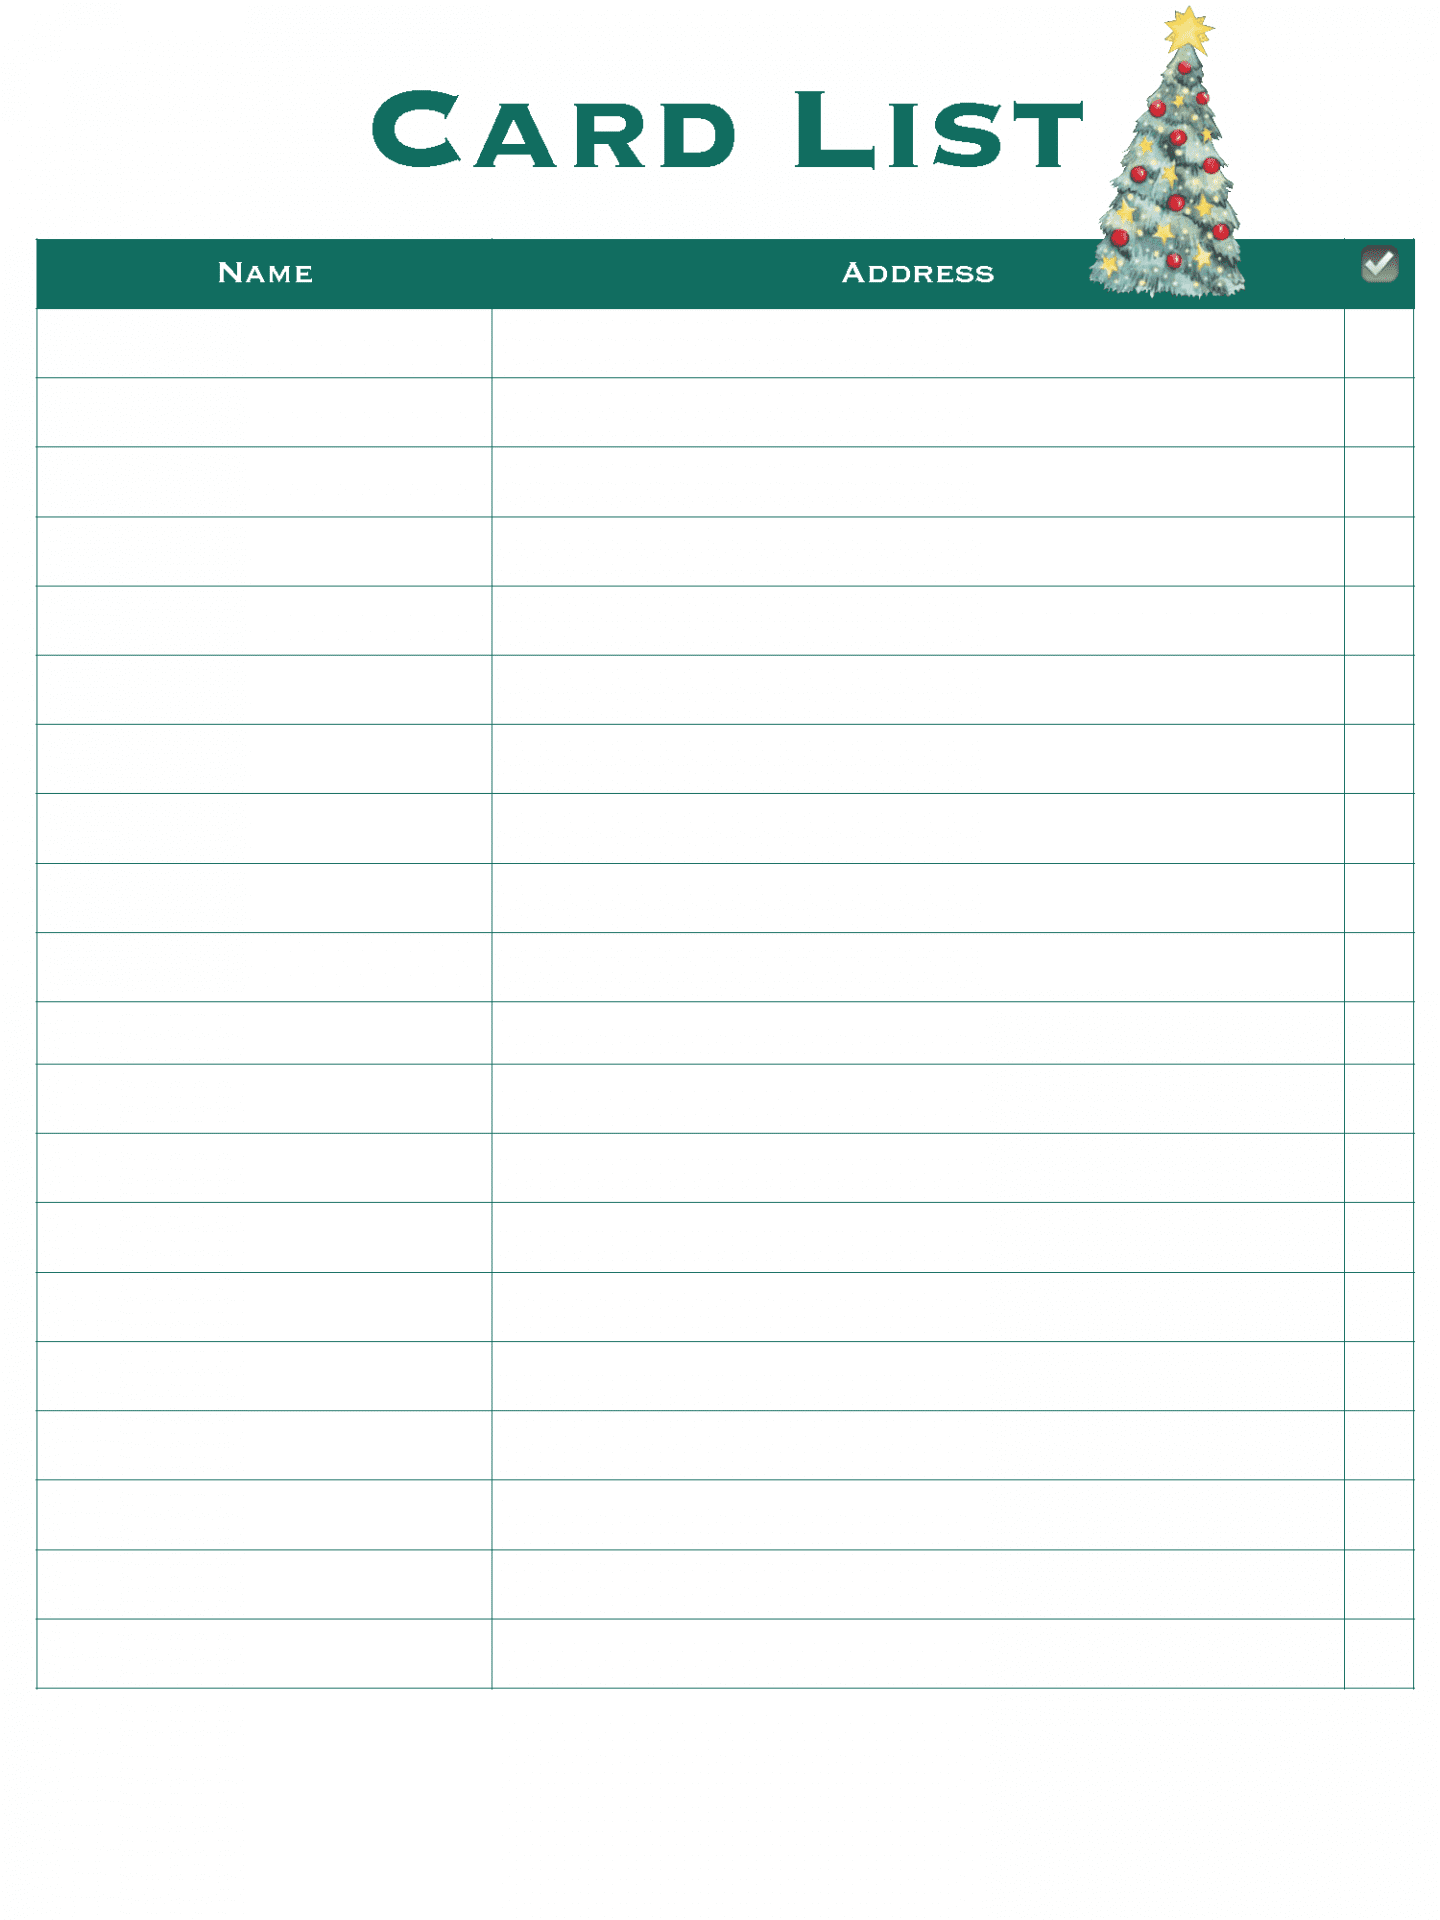 Card List - Christmas Planner - Good Life of a Housewife